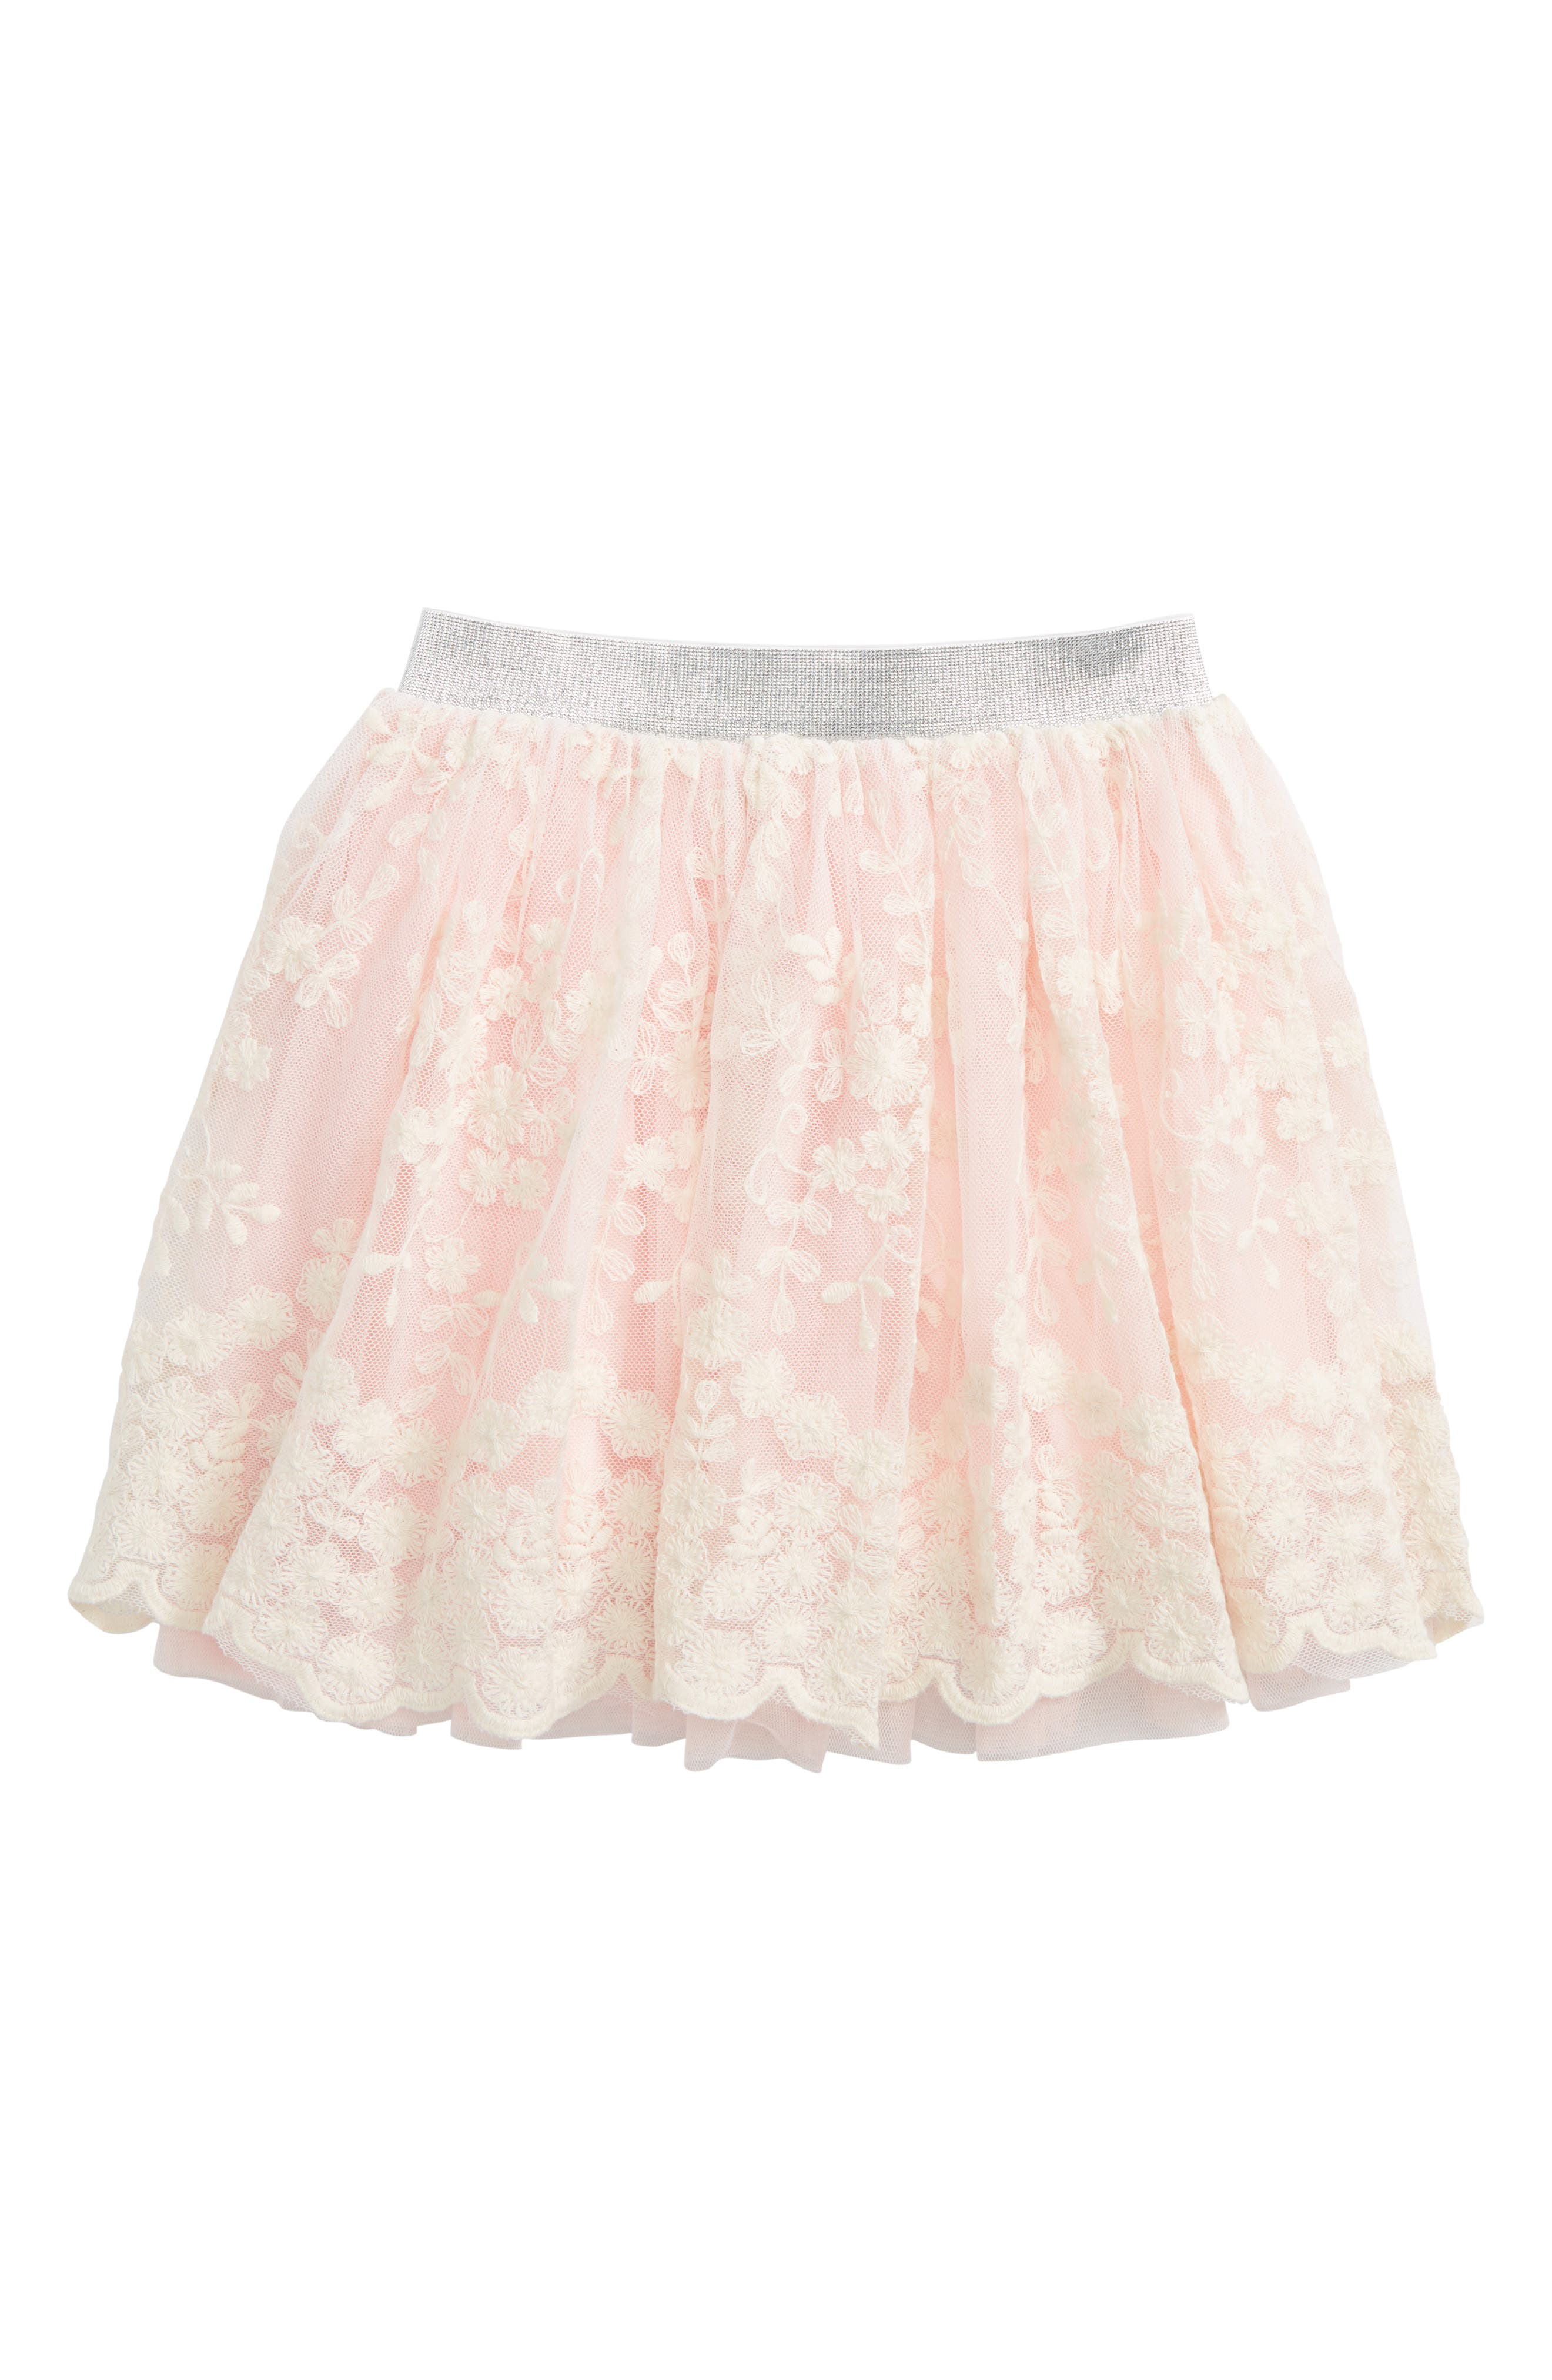 Floral Lace Skirt,                             Main thumbnail 1, color,                             Cream Multi